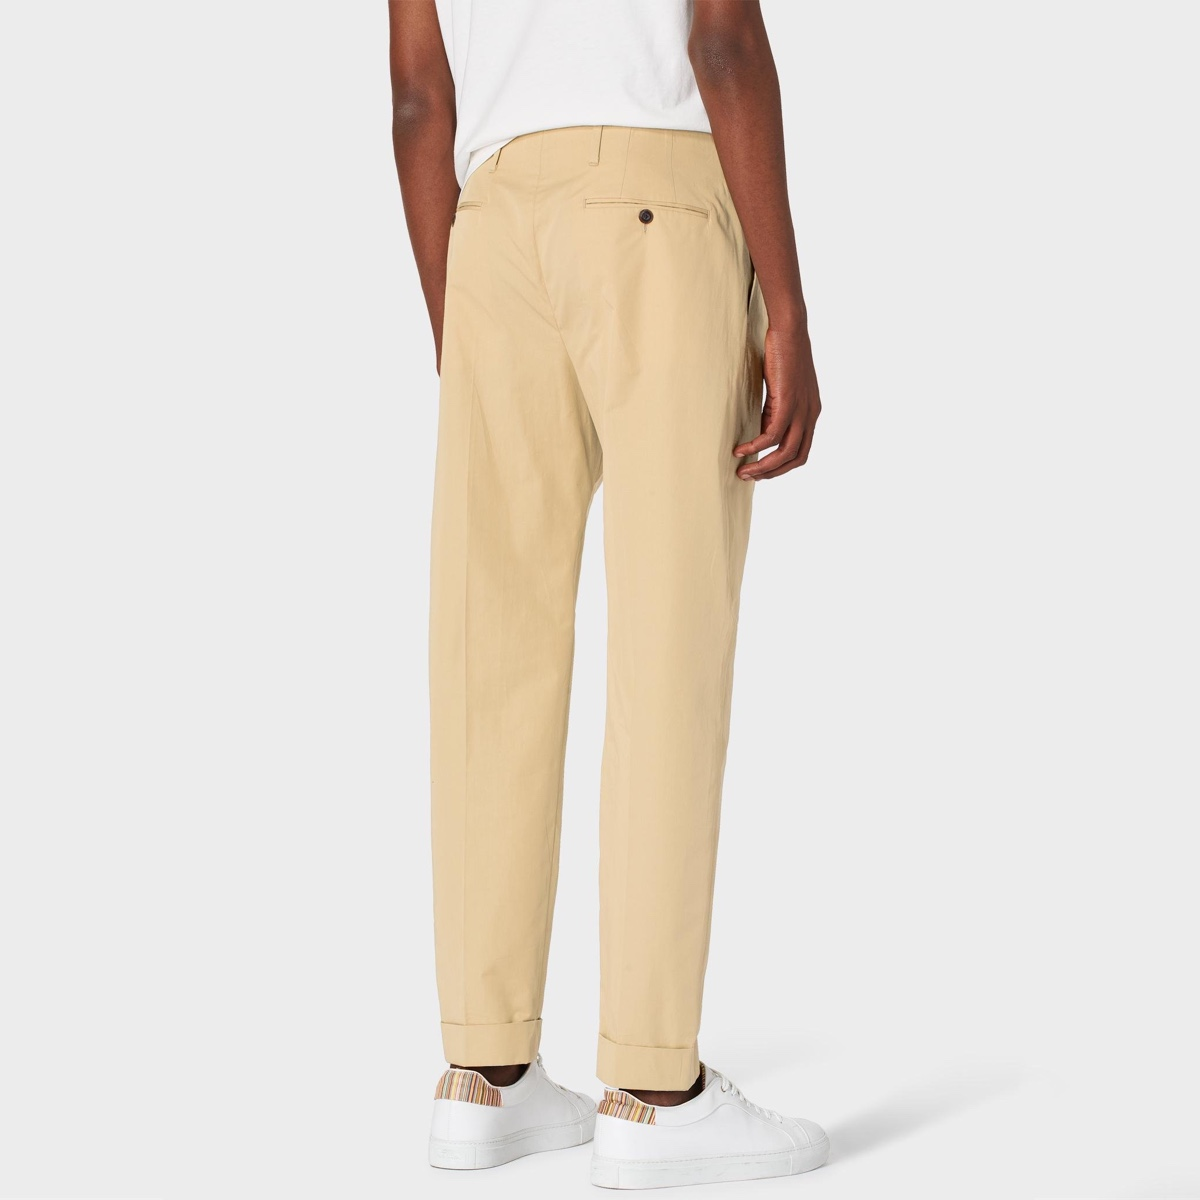 paul-smith-sand-Tapered-fit-Sand-Double-pleated-Cotton-Pants (2).jpg